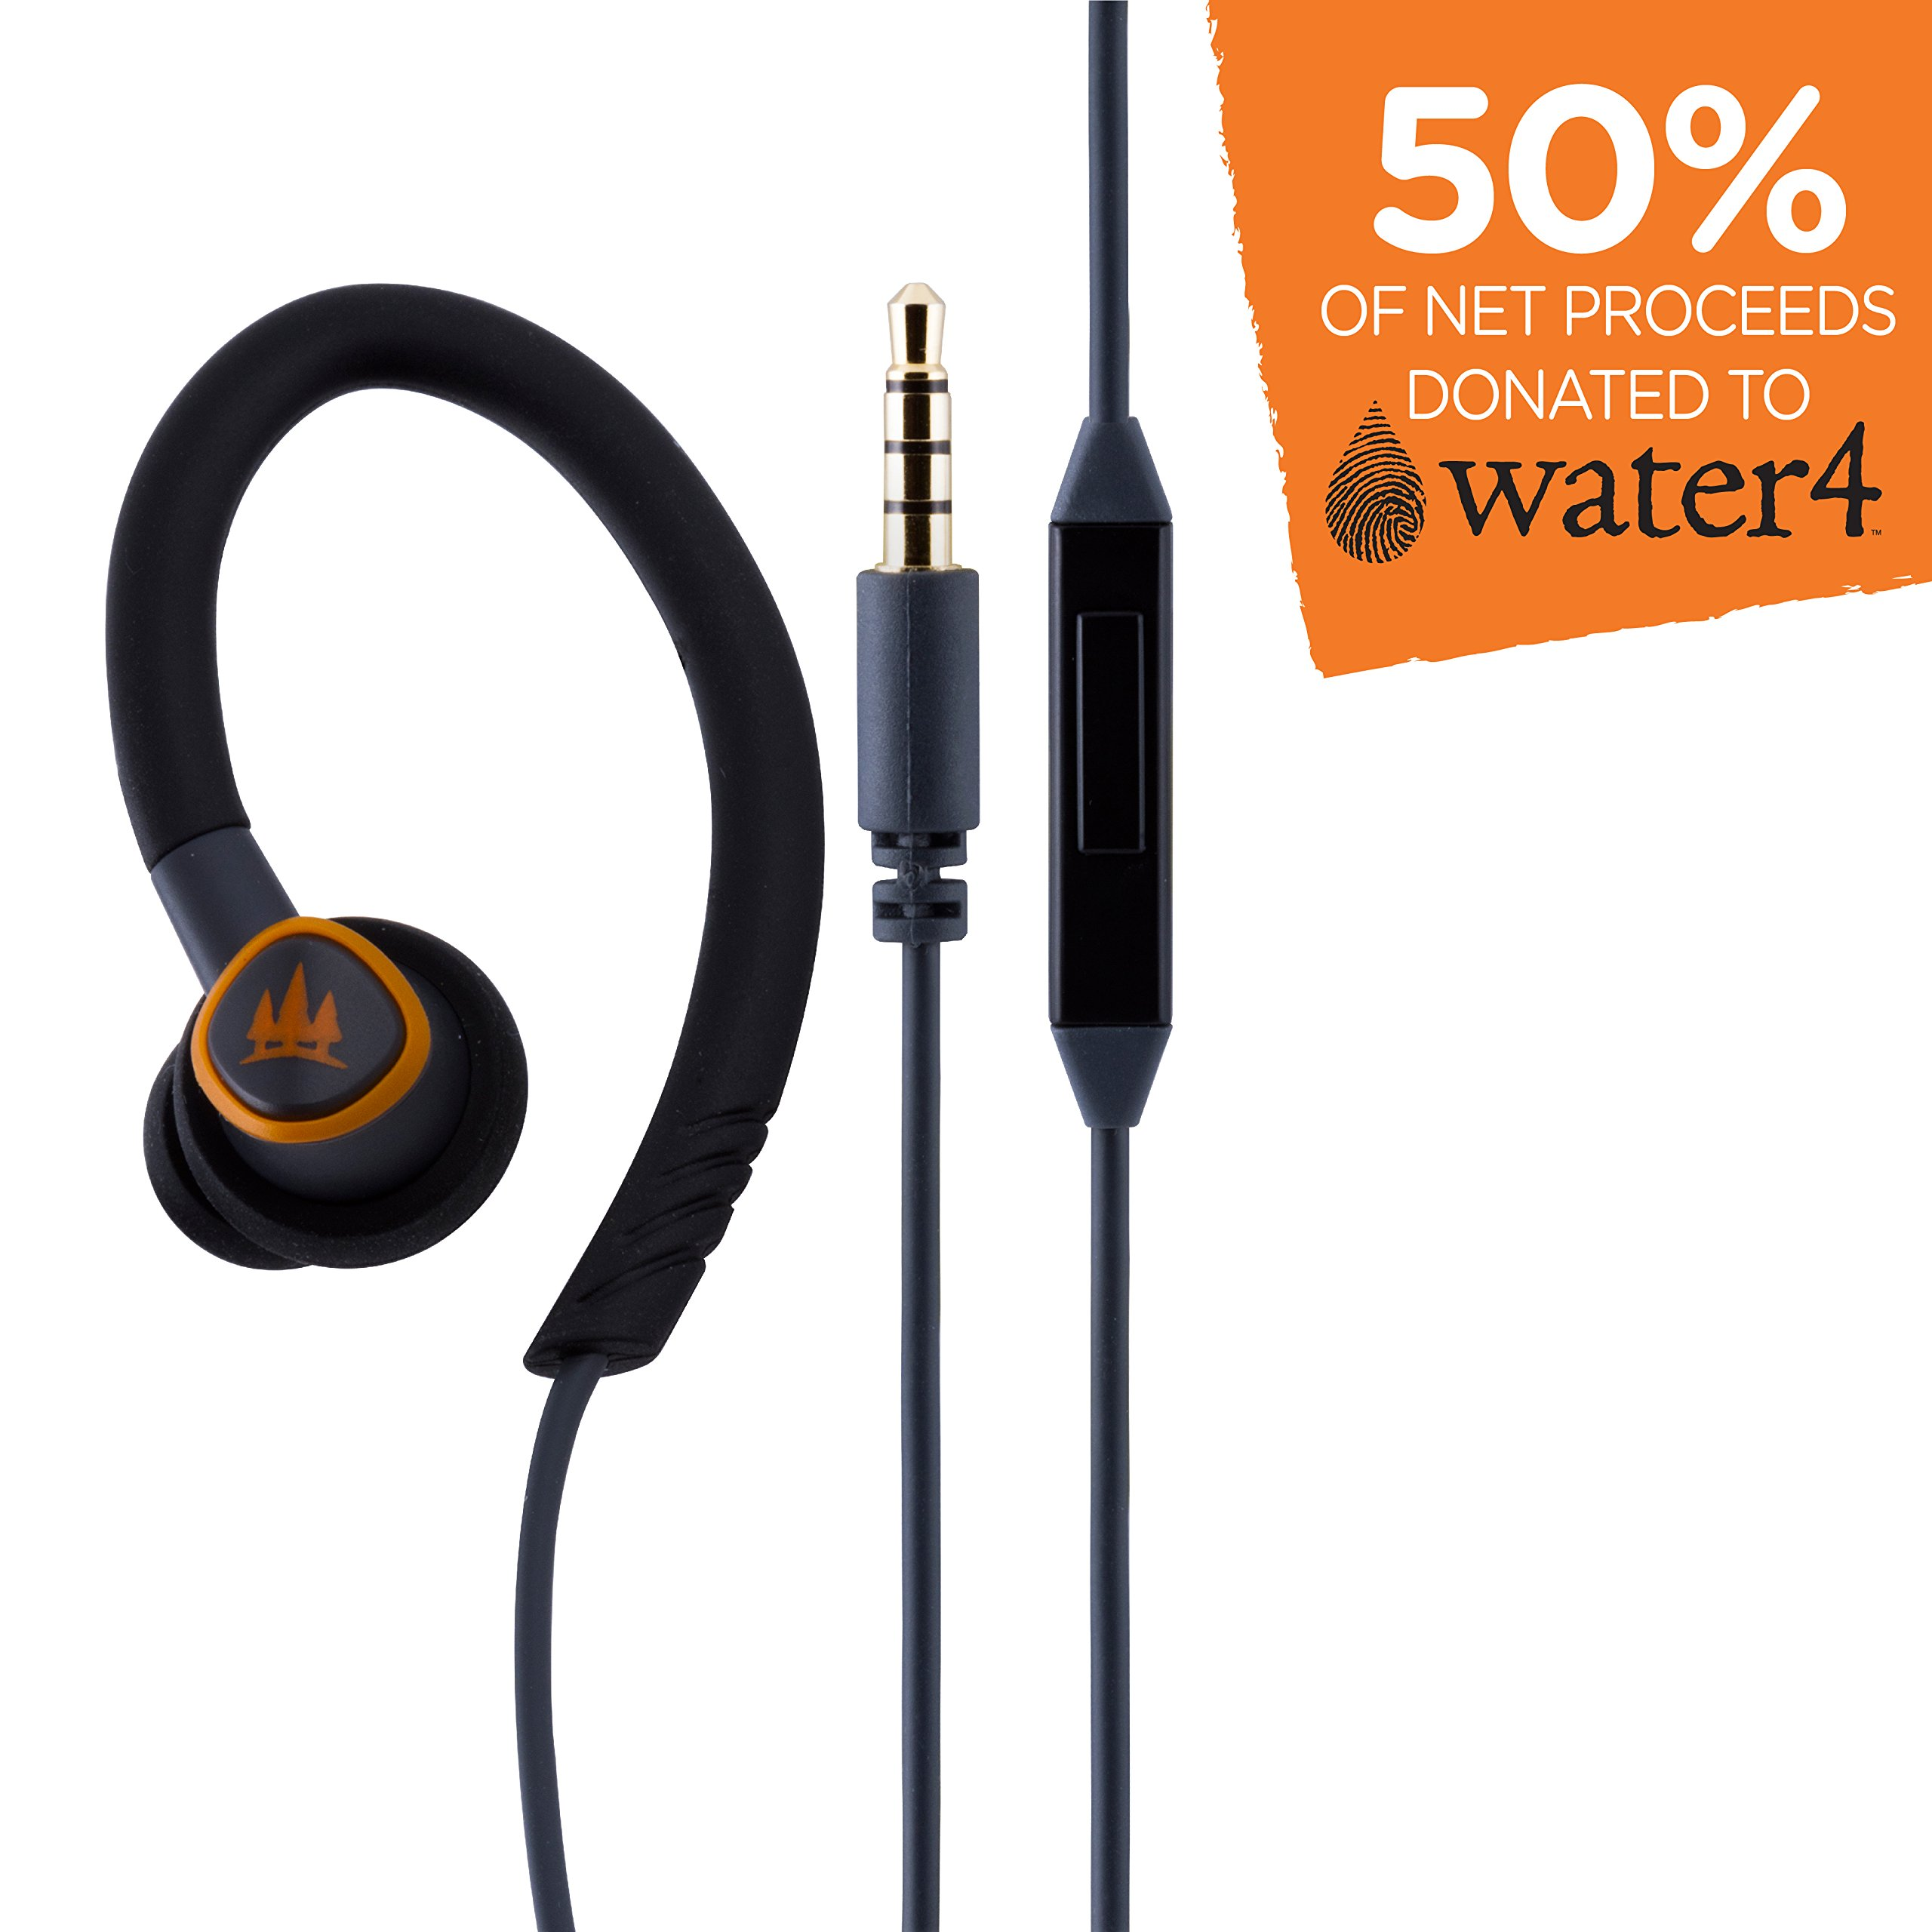 EcoSurvivor IPX4 Sweat Resistant Earbuds with Mic, In-Line Controller, Flexible Ear Loops, 3 Silicone-Gel Cushions, Premium Sound Quality, Great In-Ear Headphones, Outdoors, Gray, 37602 by Eco Survivor